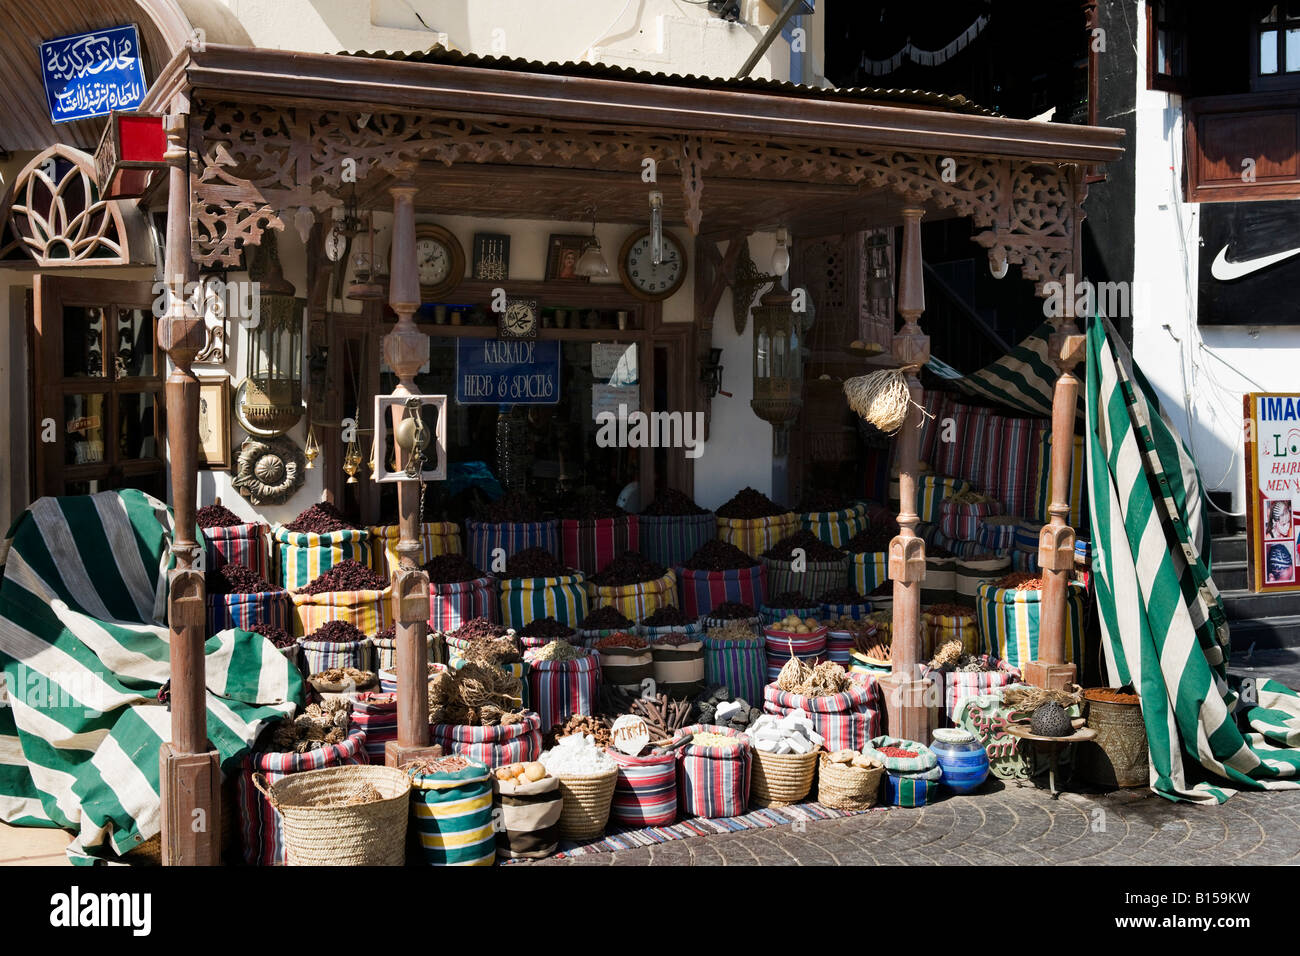 Herb and Spice shop on King of Bahrein Street in the shopping district, Naama Bay, Sharm el-Sheikh, Red Sea Coast, - Stock Image